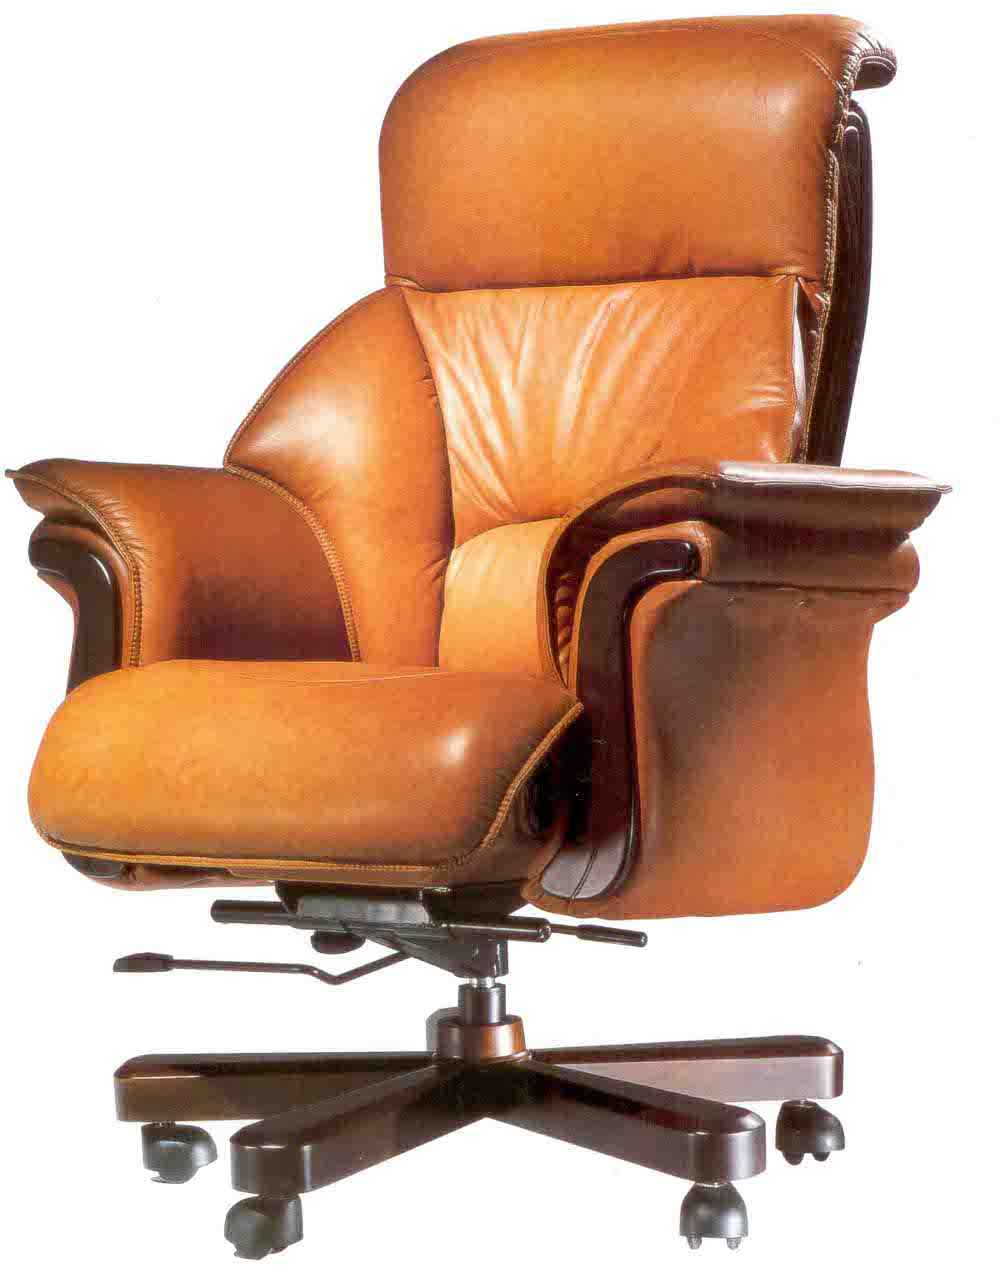 Office furniture office furniture Luxury wheelchairs